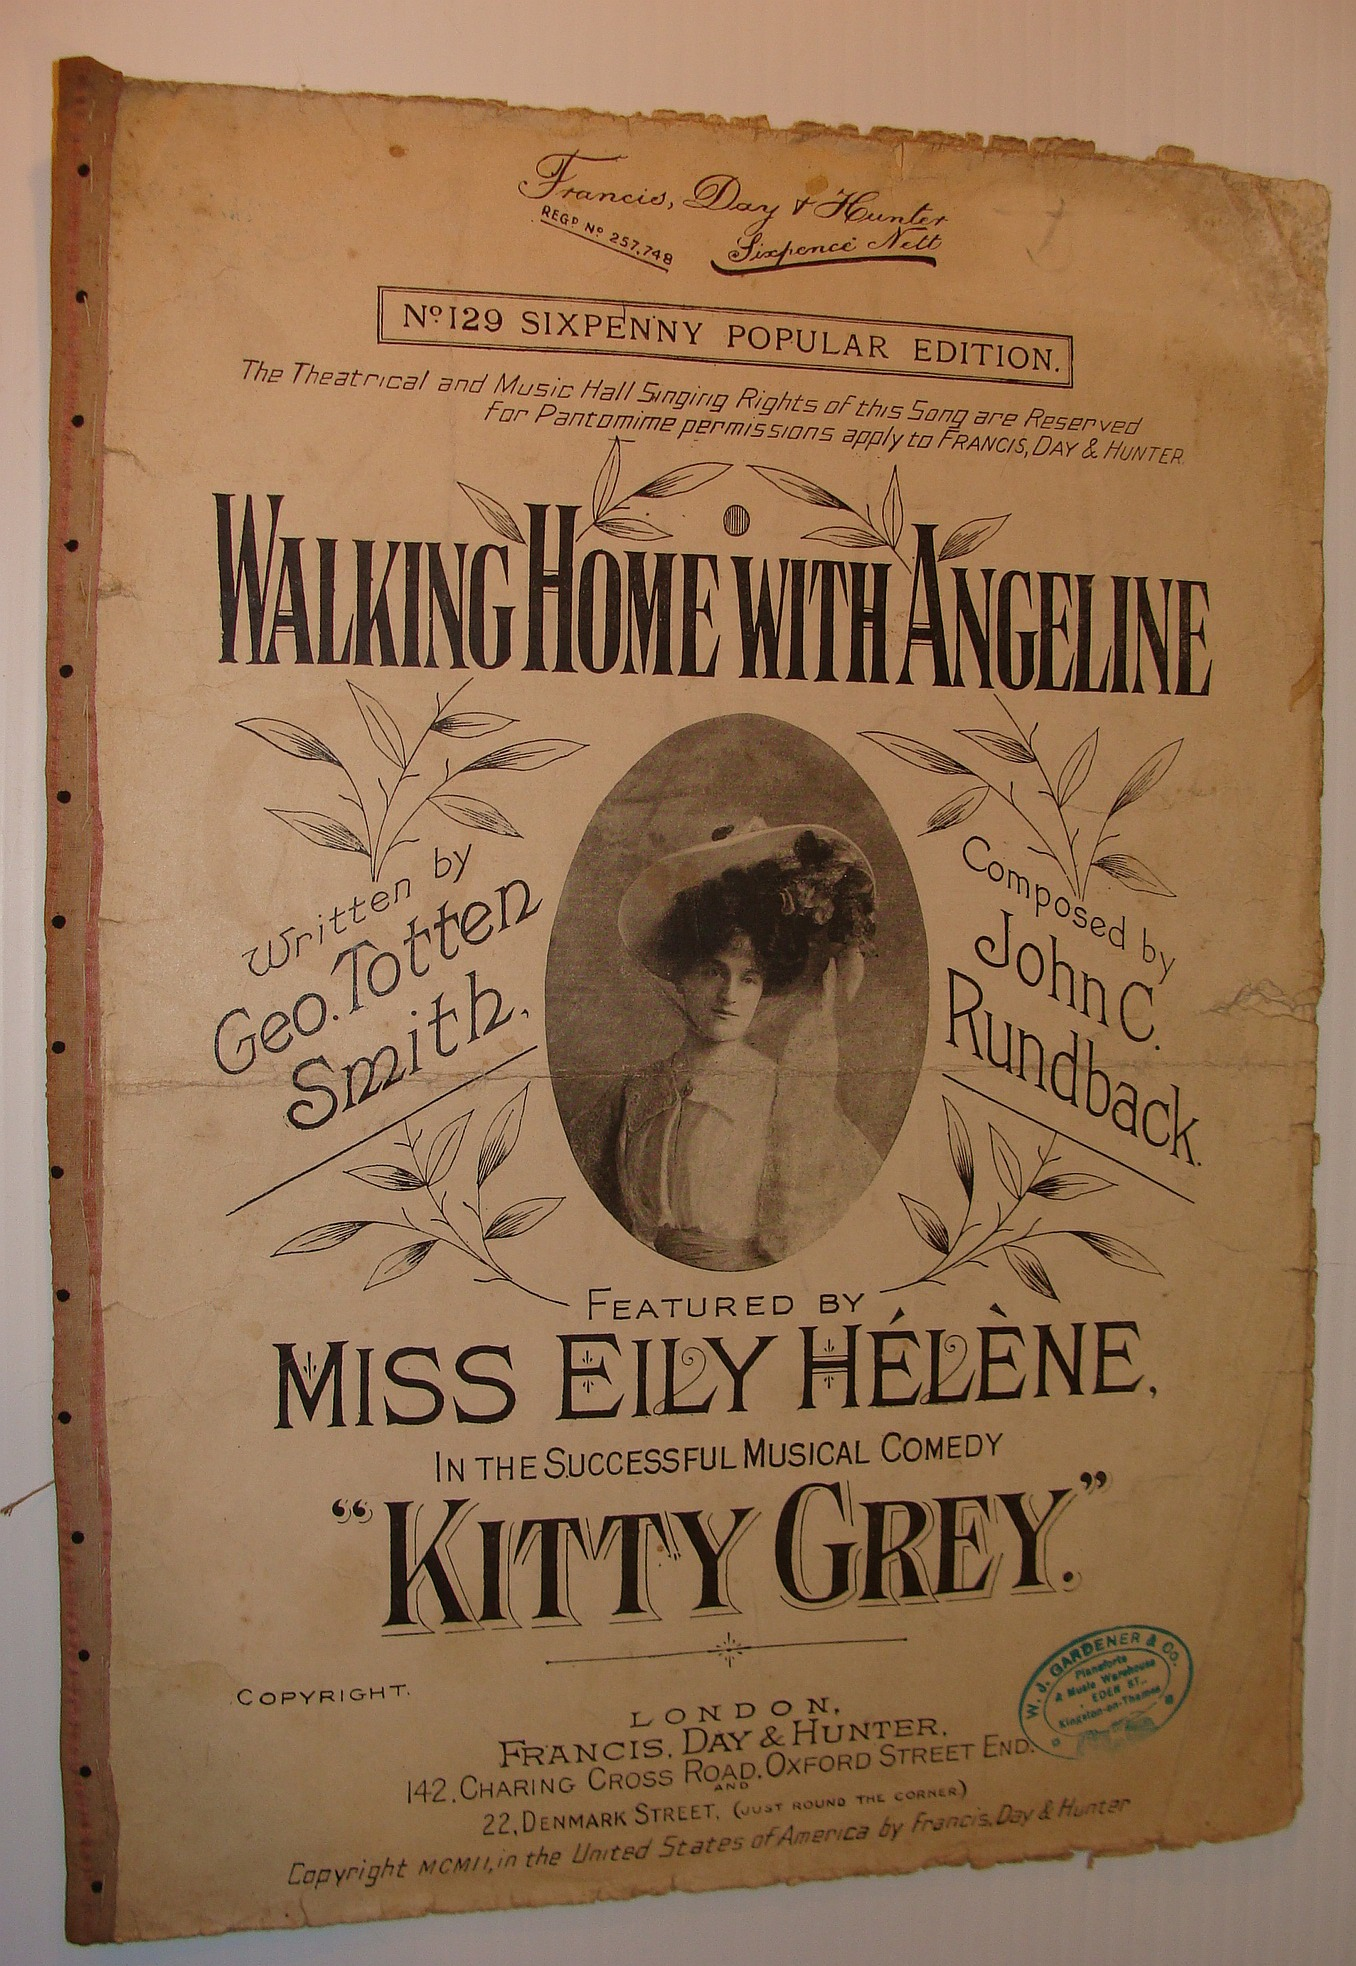 Image for Walking Home With Angeline: Sheet Music for Voice and Piano - Featured By Miss Eily Helene in the Successful Musical Comedy Kitty Grey